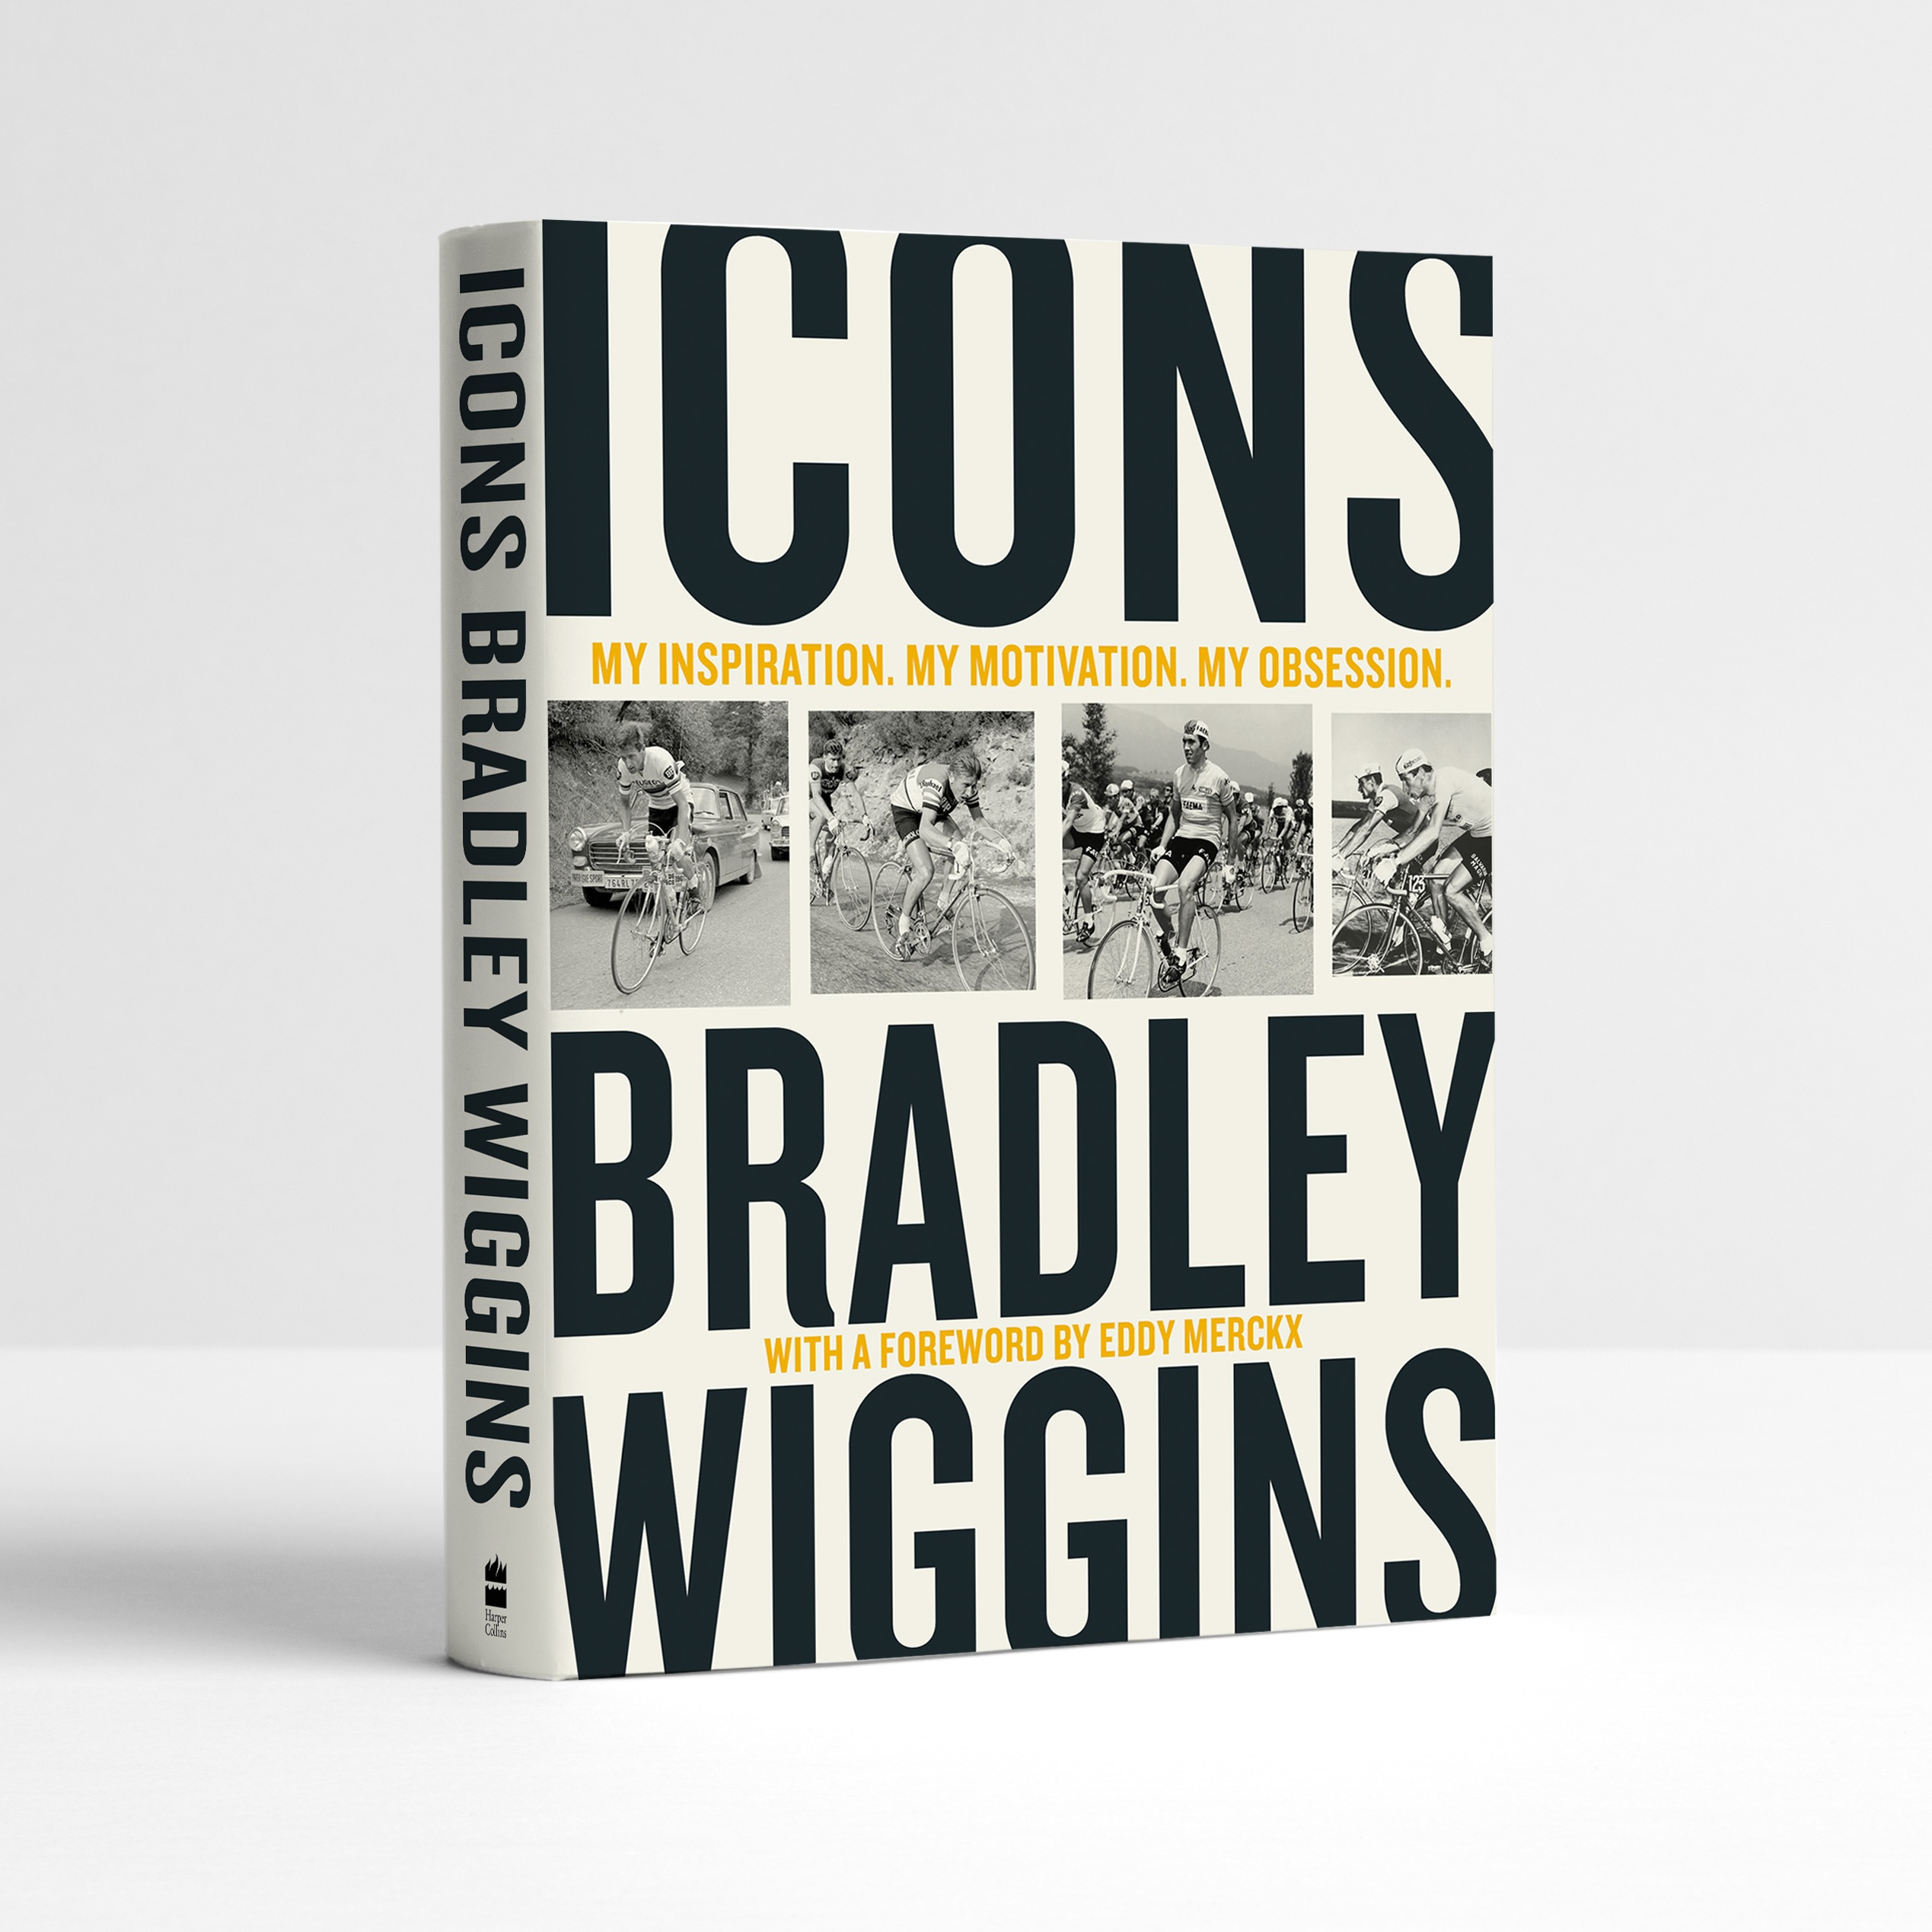 'Icons' by Bradley Wiggins